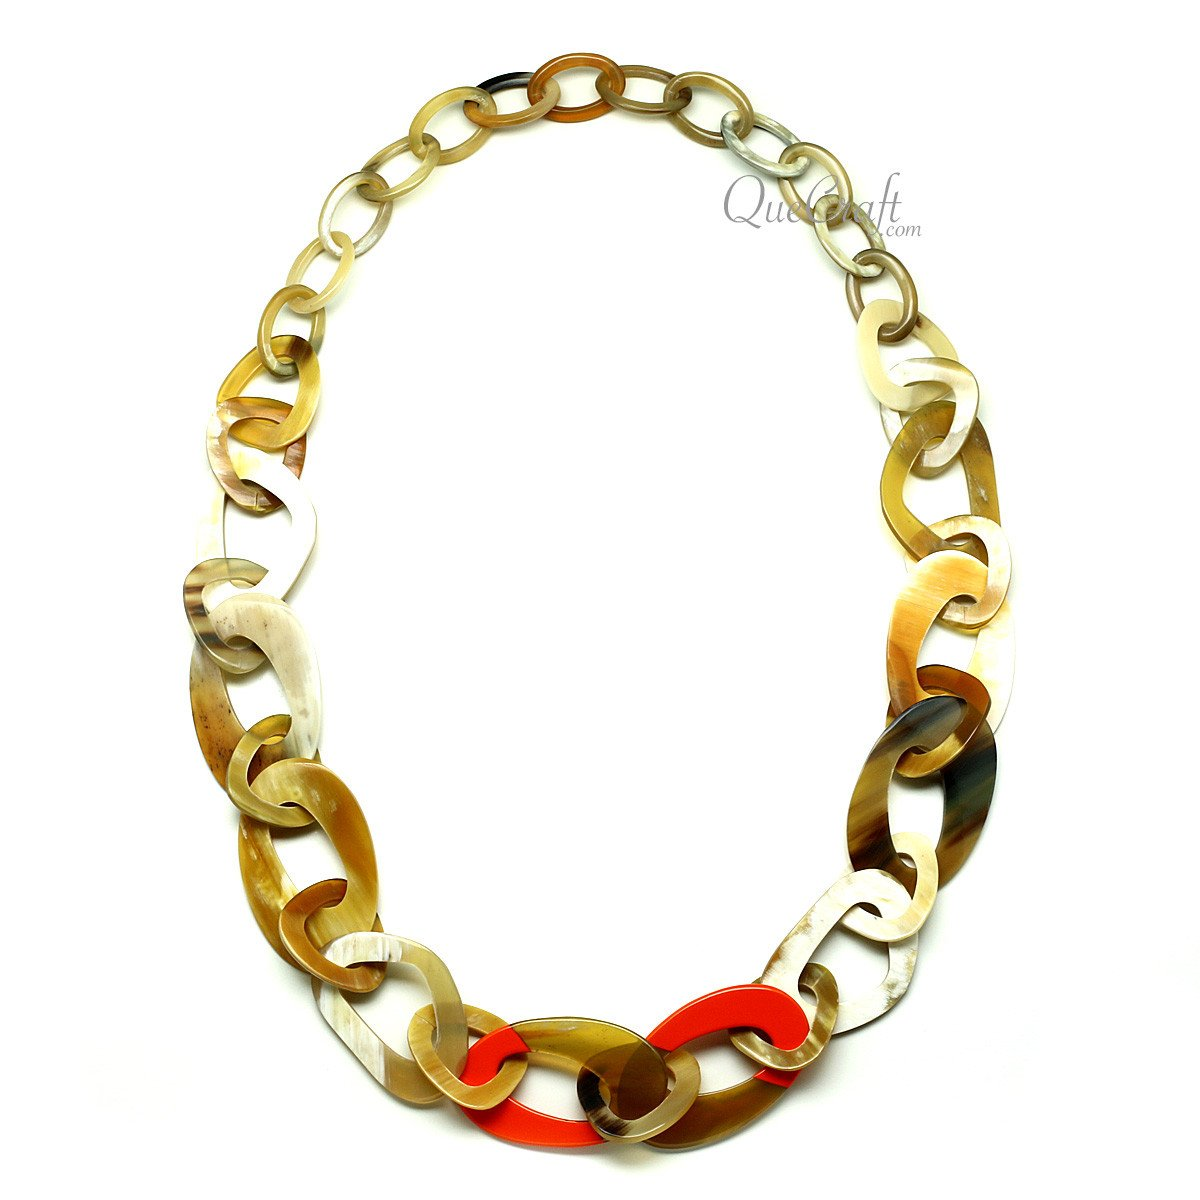 Horn & Lacquer Chain Necklace #10273 - HORN.JEWELRY